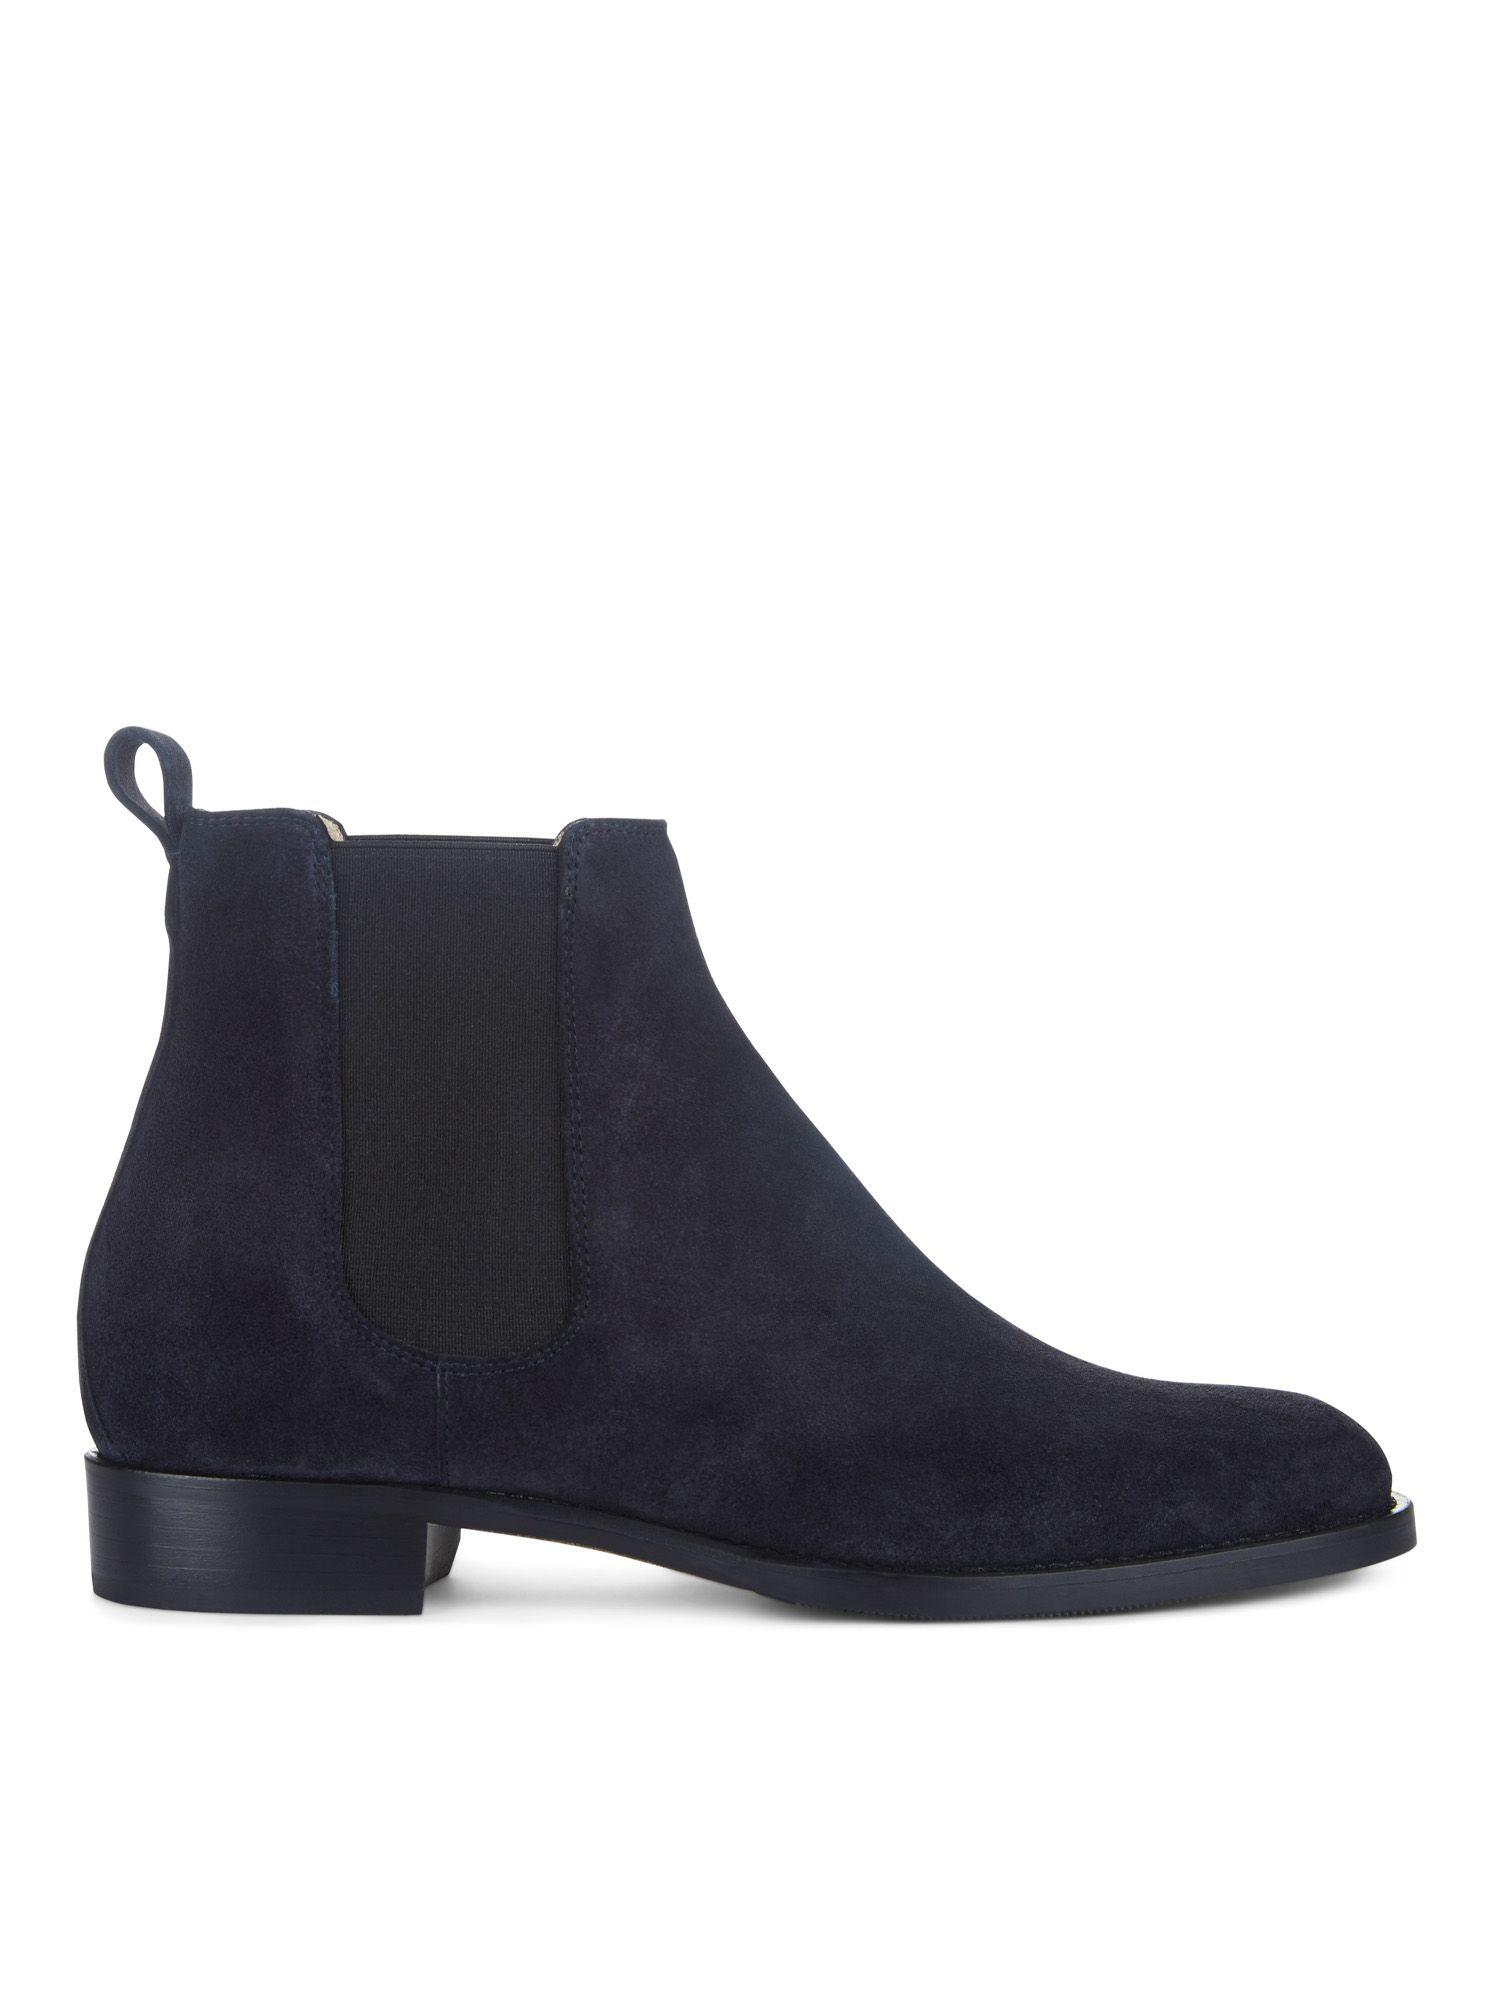 Hobbs Leather Nicole Boot in Blue